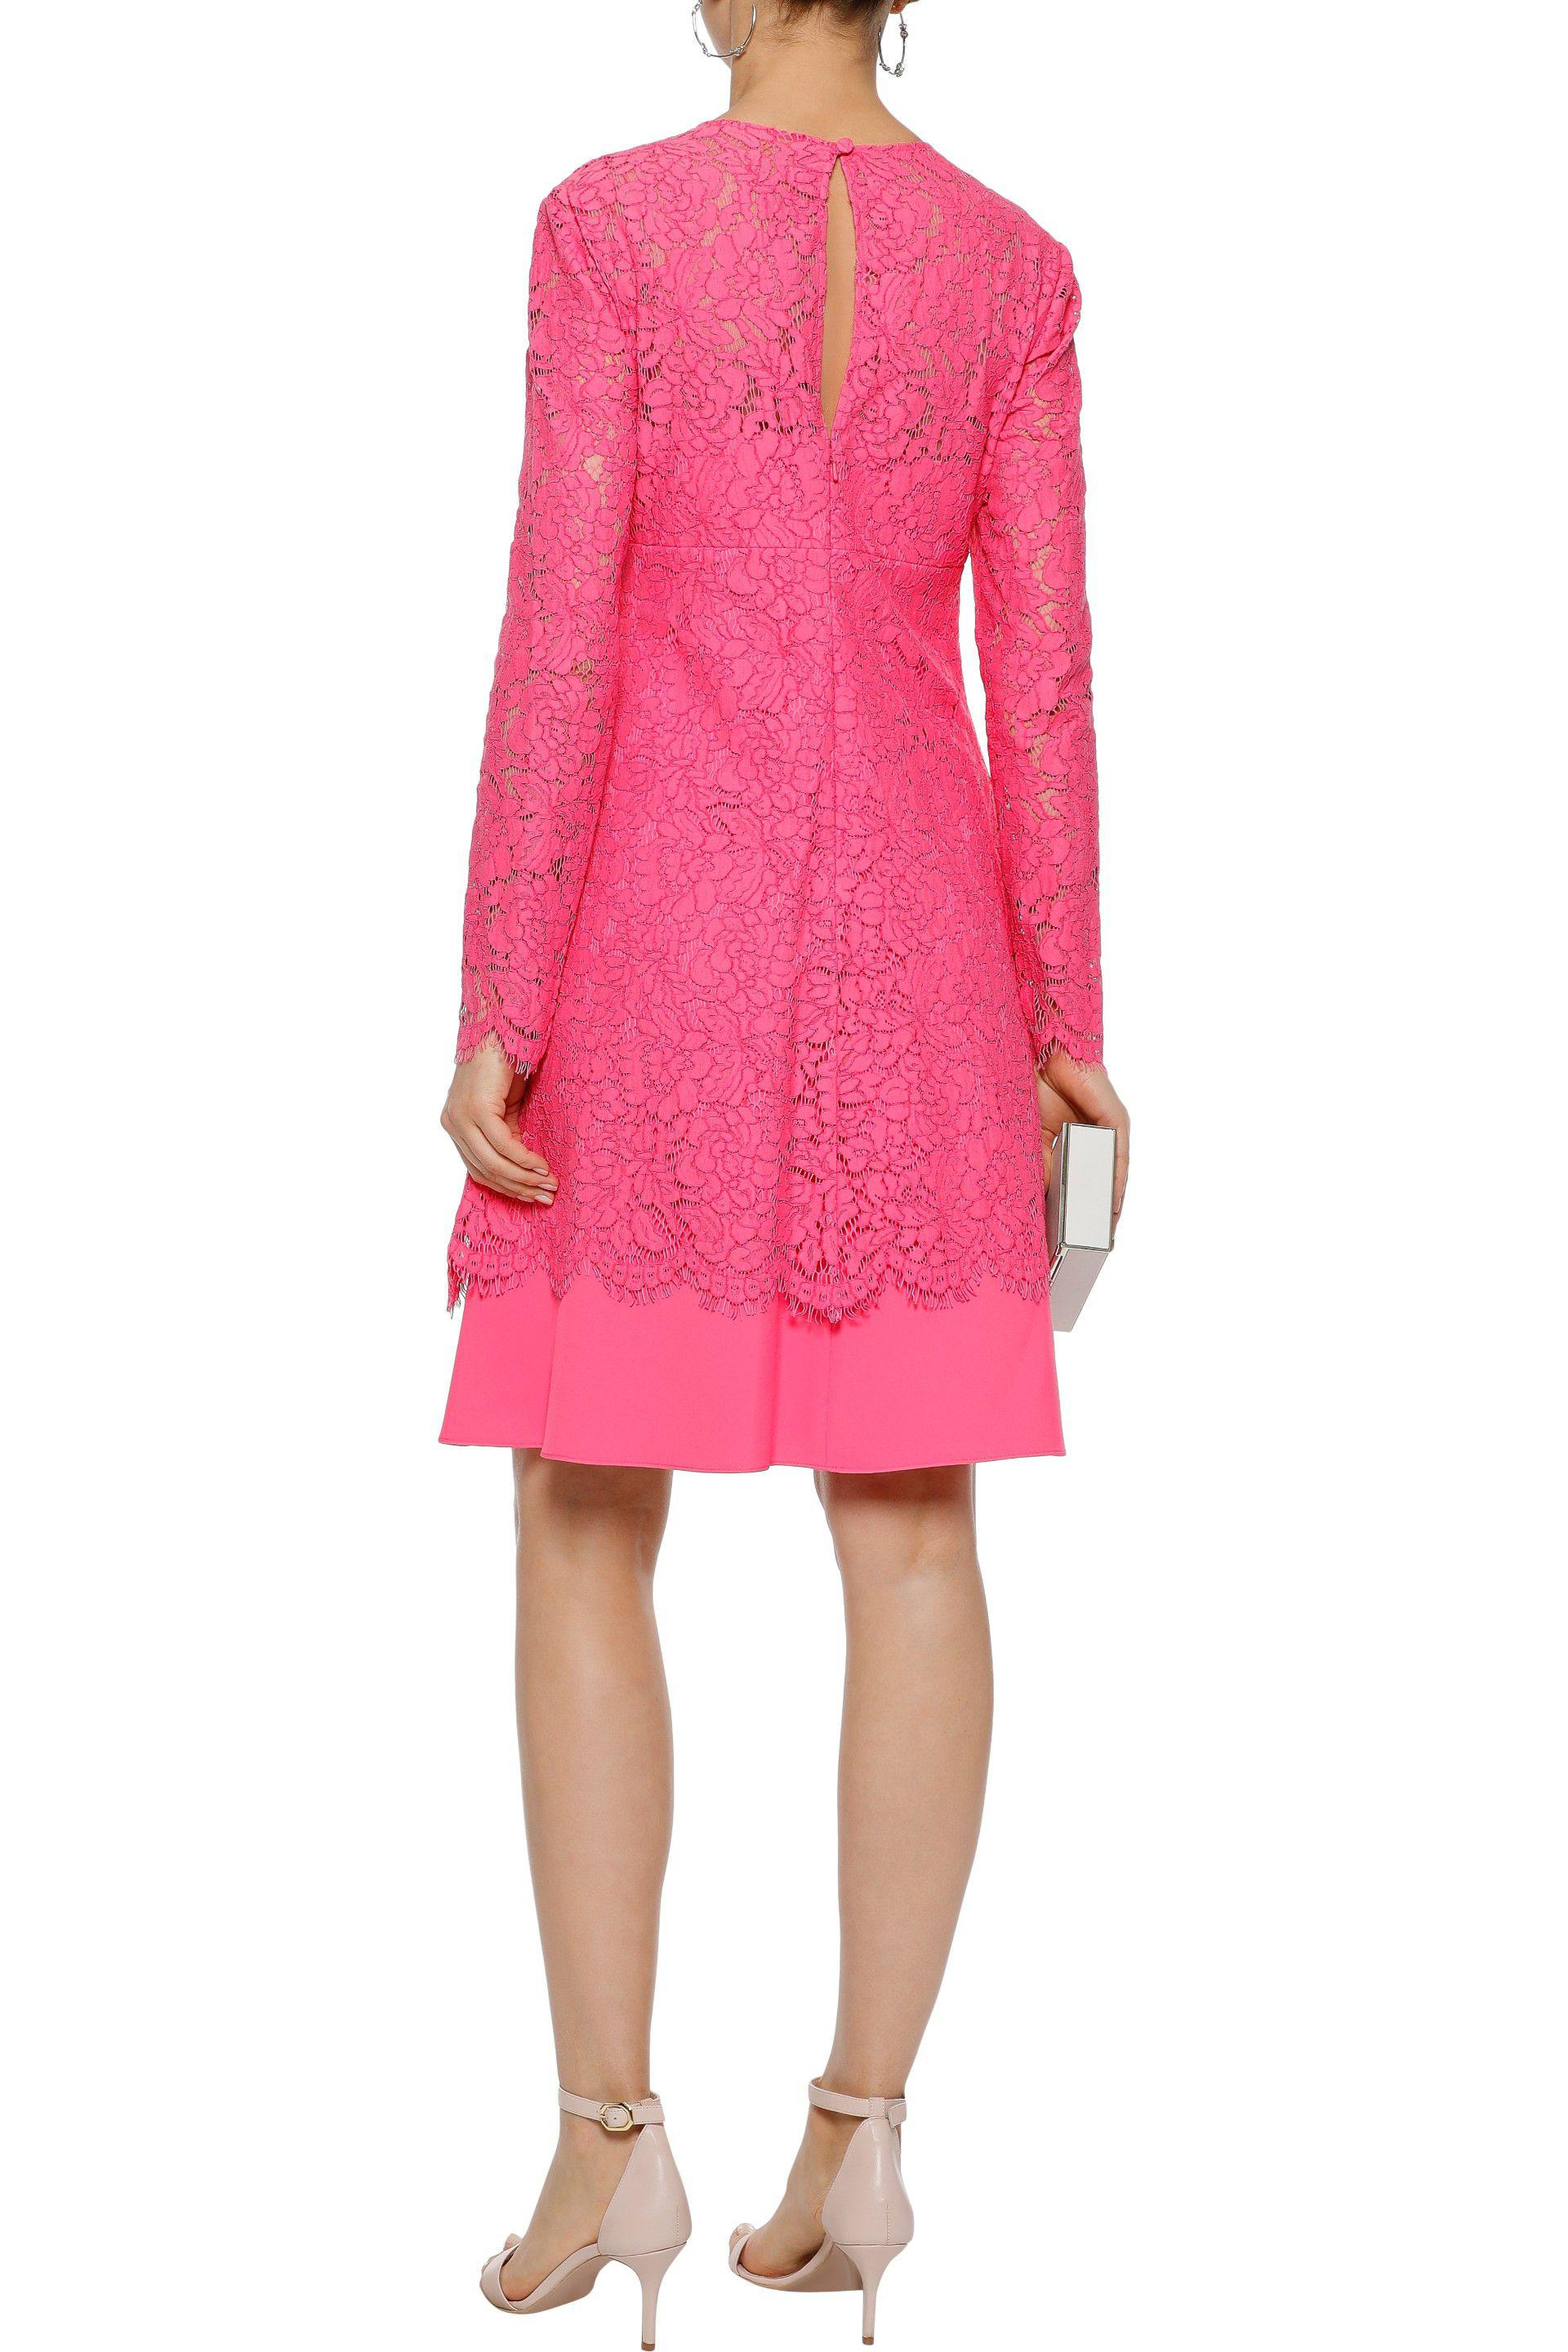 Mikael Aghal Woman Layered Corded Lace And Cady Dress Fuchsia Size 4 Mikael Aghal Free Shipping Manchester Discount Many Kinds Of Cheap Sale Supply JYuj9xaFh6